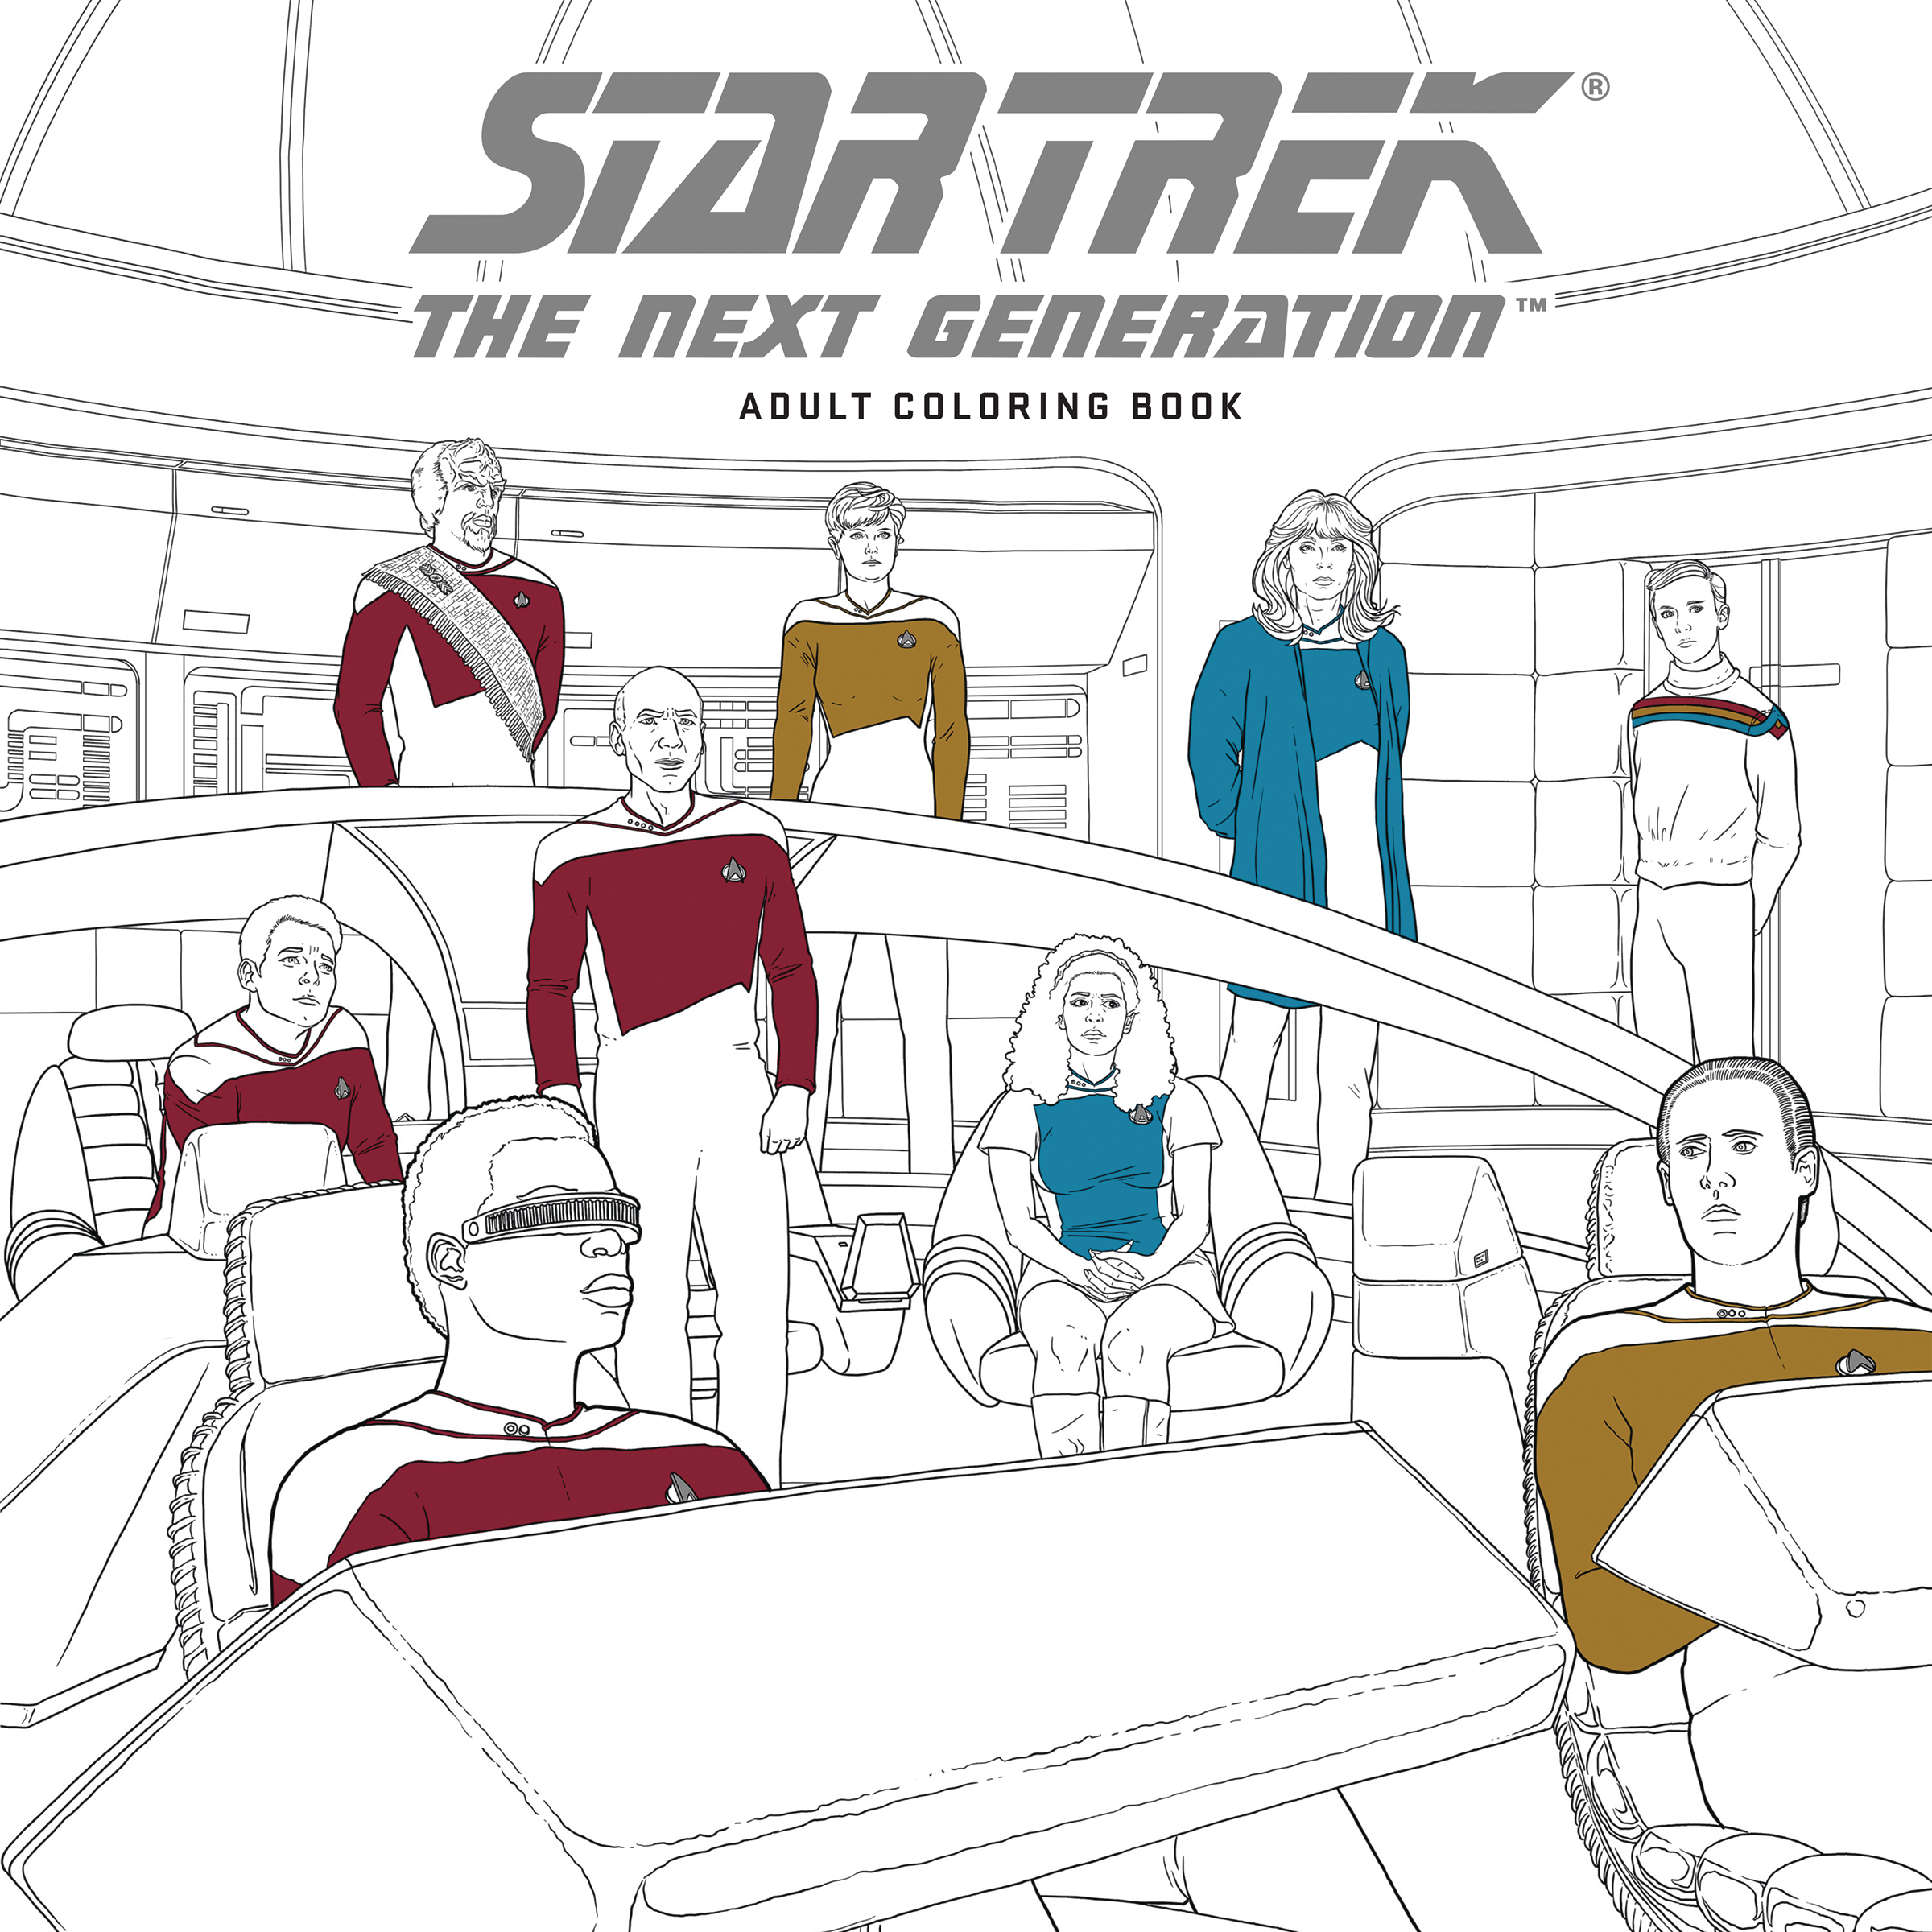 STAR TREK TNG ADULT COLORING BOOK TP VOL 01 (O/A)